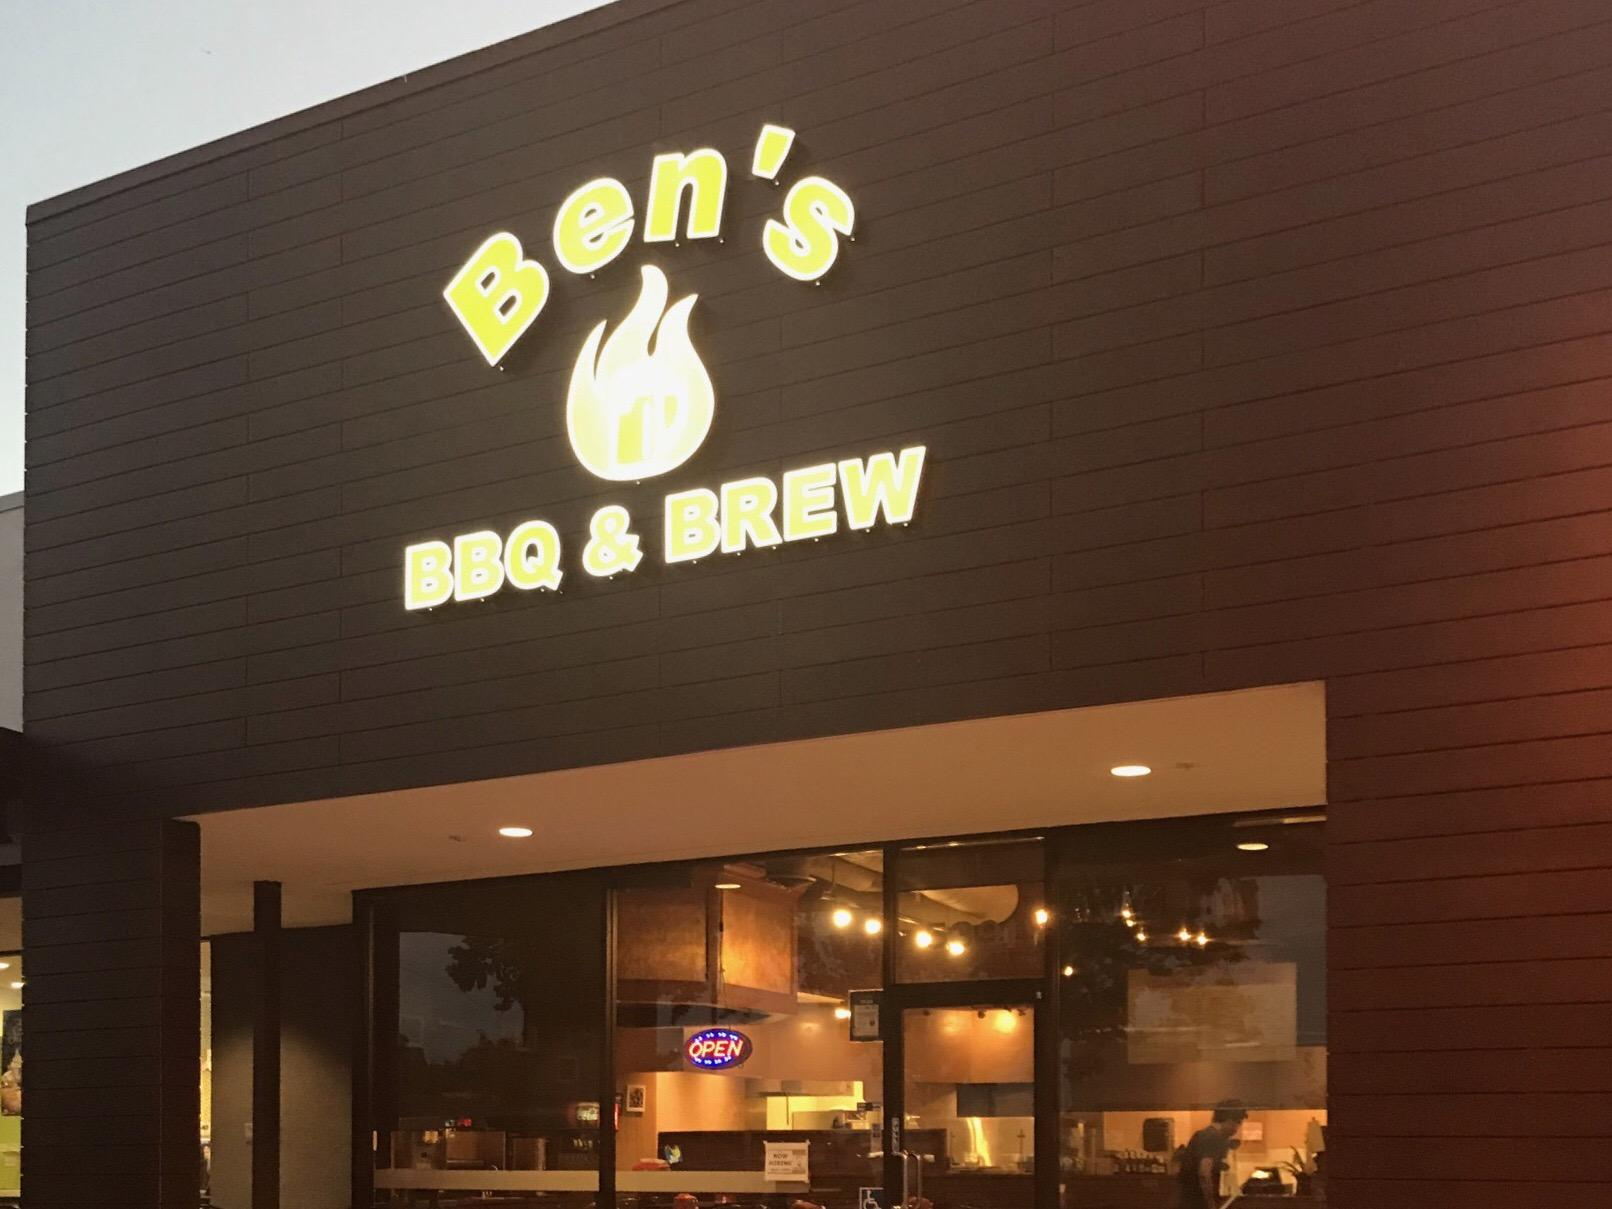 Open mic night at Ben's BBQ & Brew